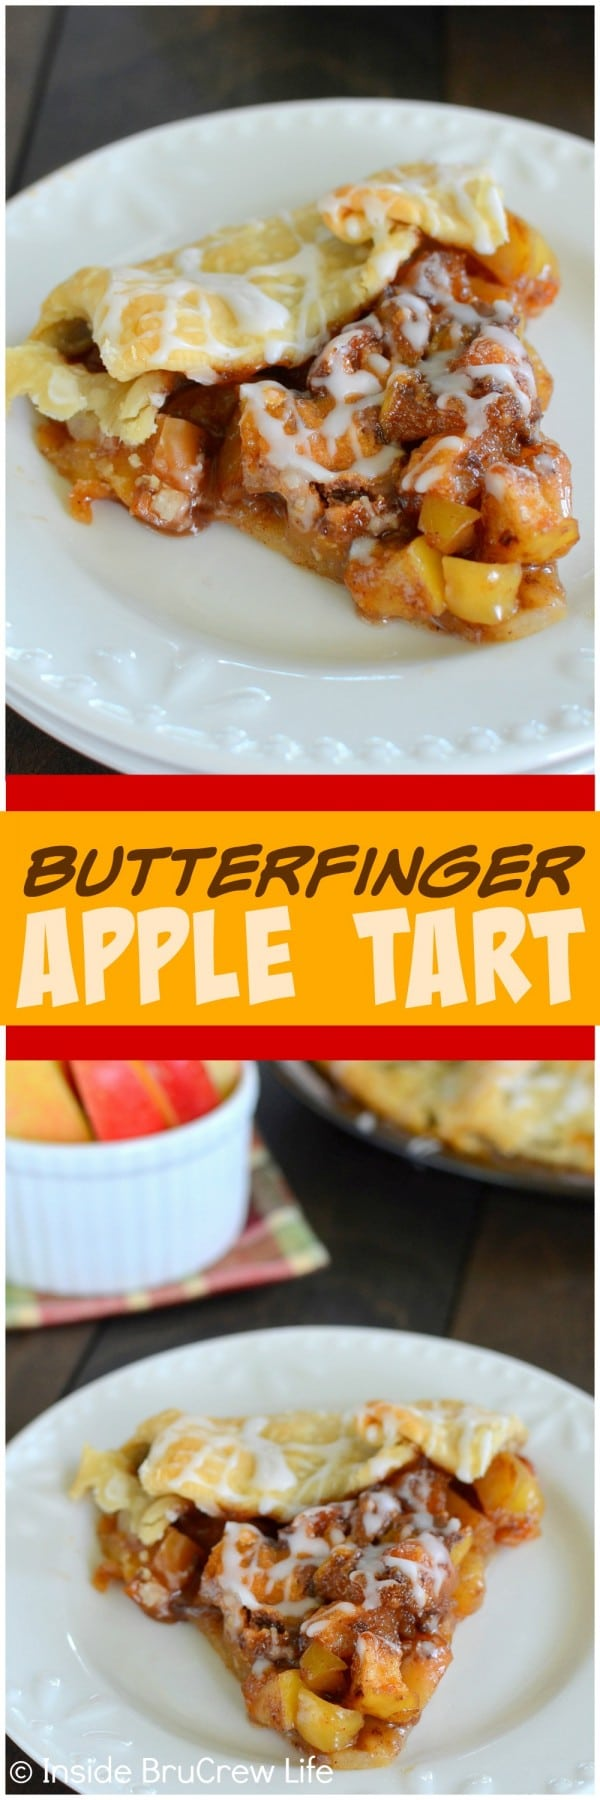 Butterfinger Apple Tart -candy bars and cinnamon apples make this easy pie disappear in a hurry! It's a great dessert recipe!